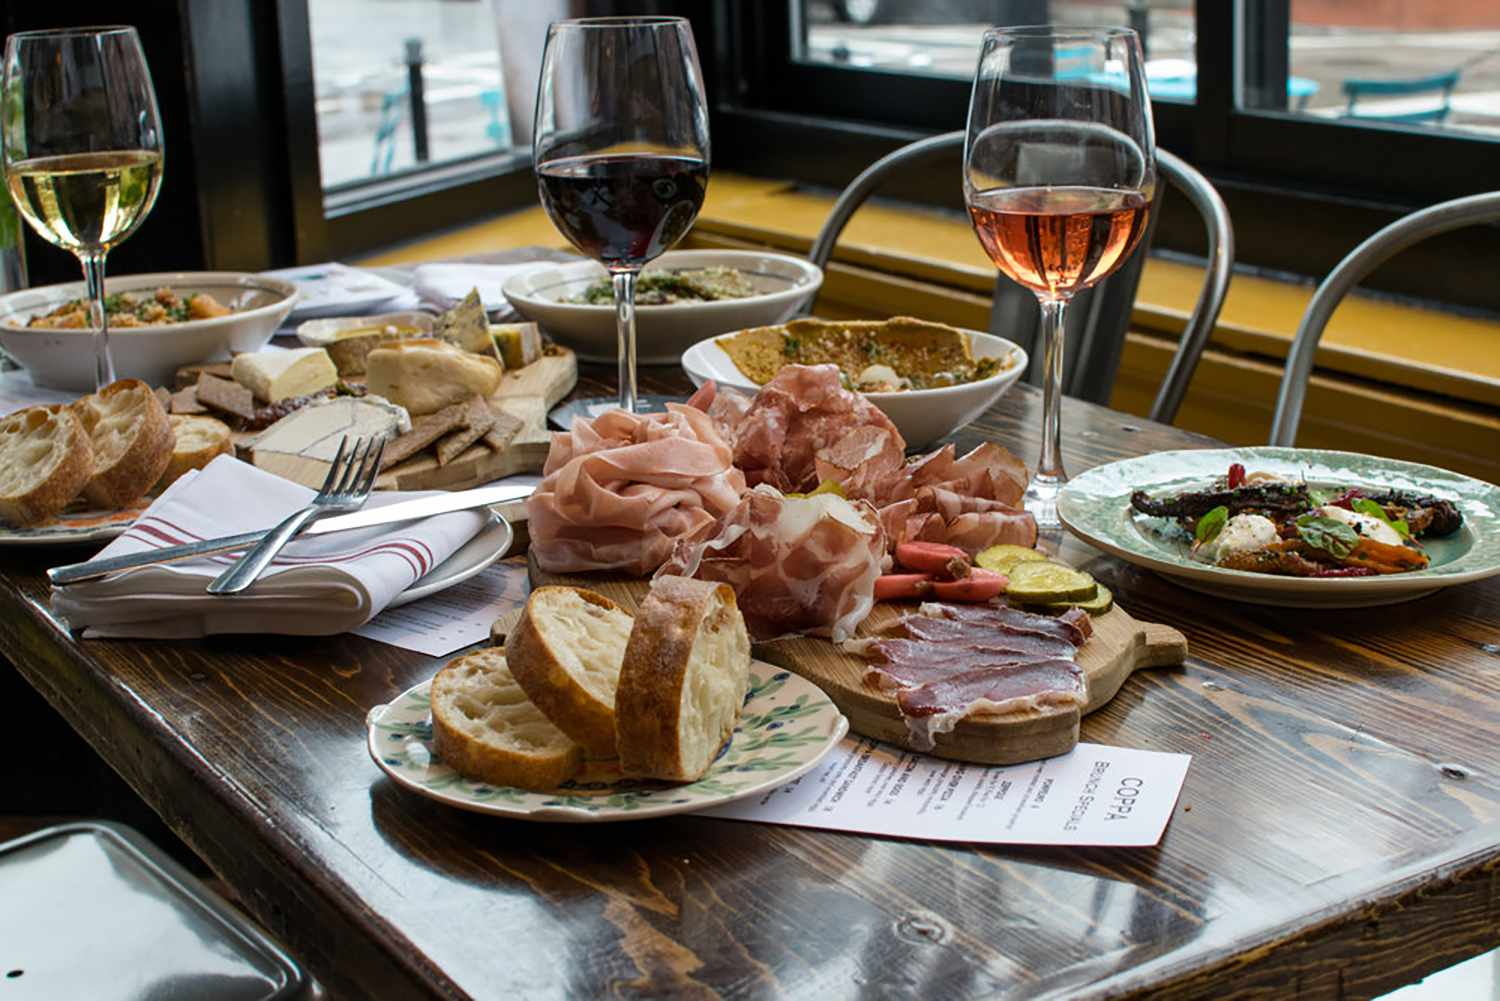 Food on the table at Coppa Enoteca in Boston